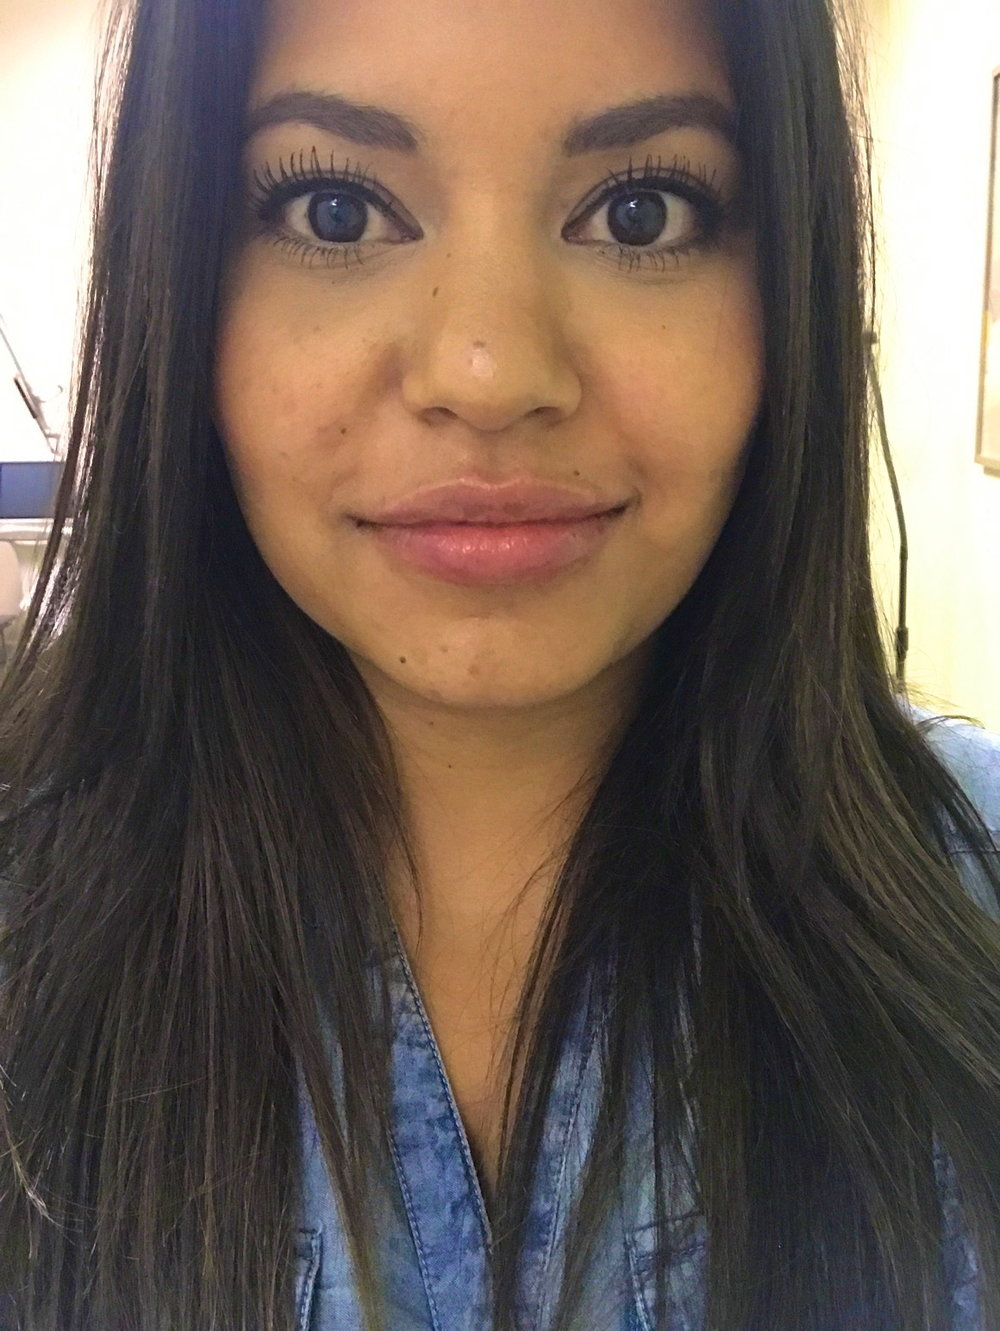 Richelle-Hedlund-Lip-Procedure-Review-Before-After-Puckers-Pumps-Blog5.jpg